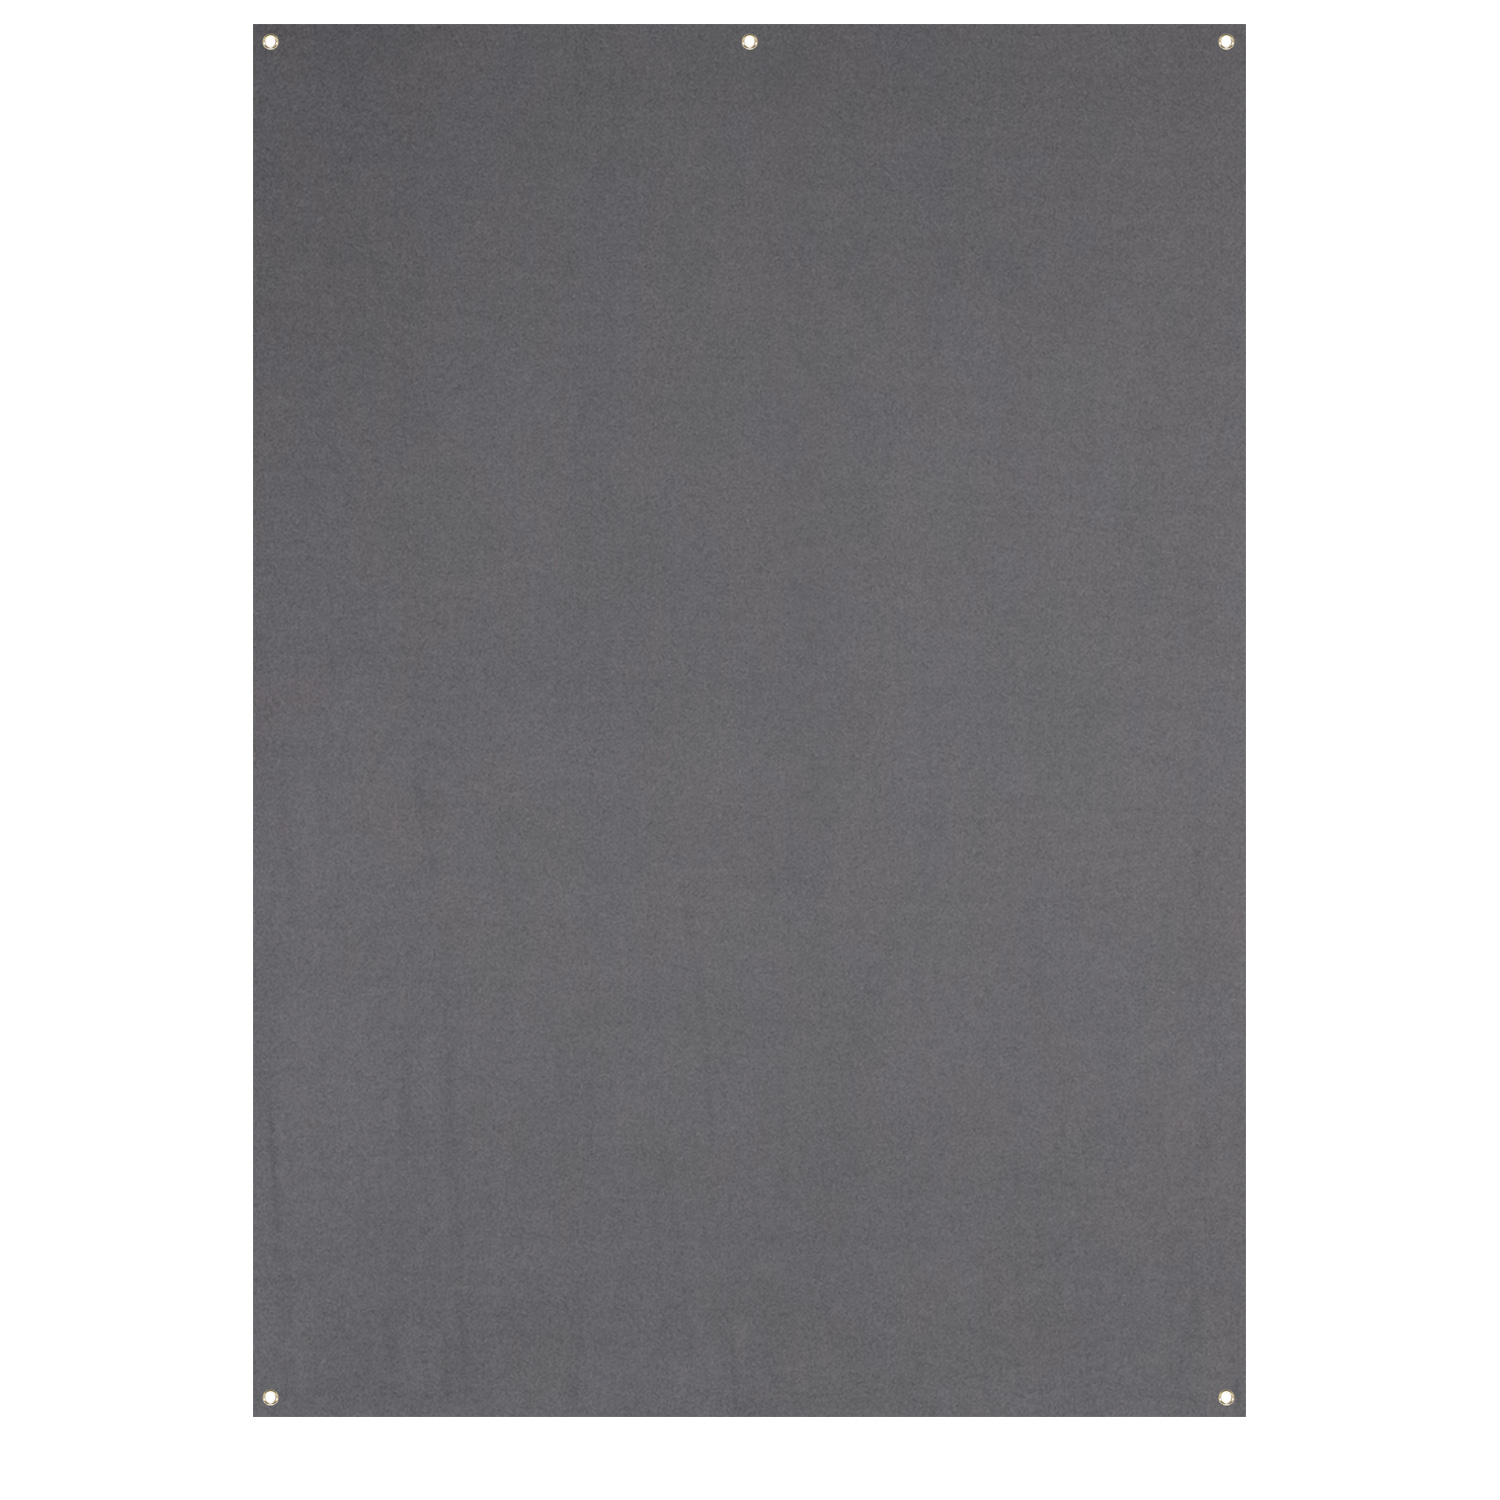 X-Drop Wrinkle-Resistant Backdrop - Neutral Gray (5' x 7')